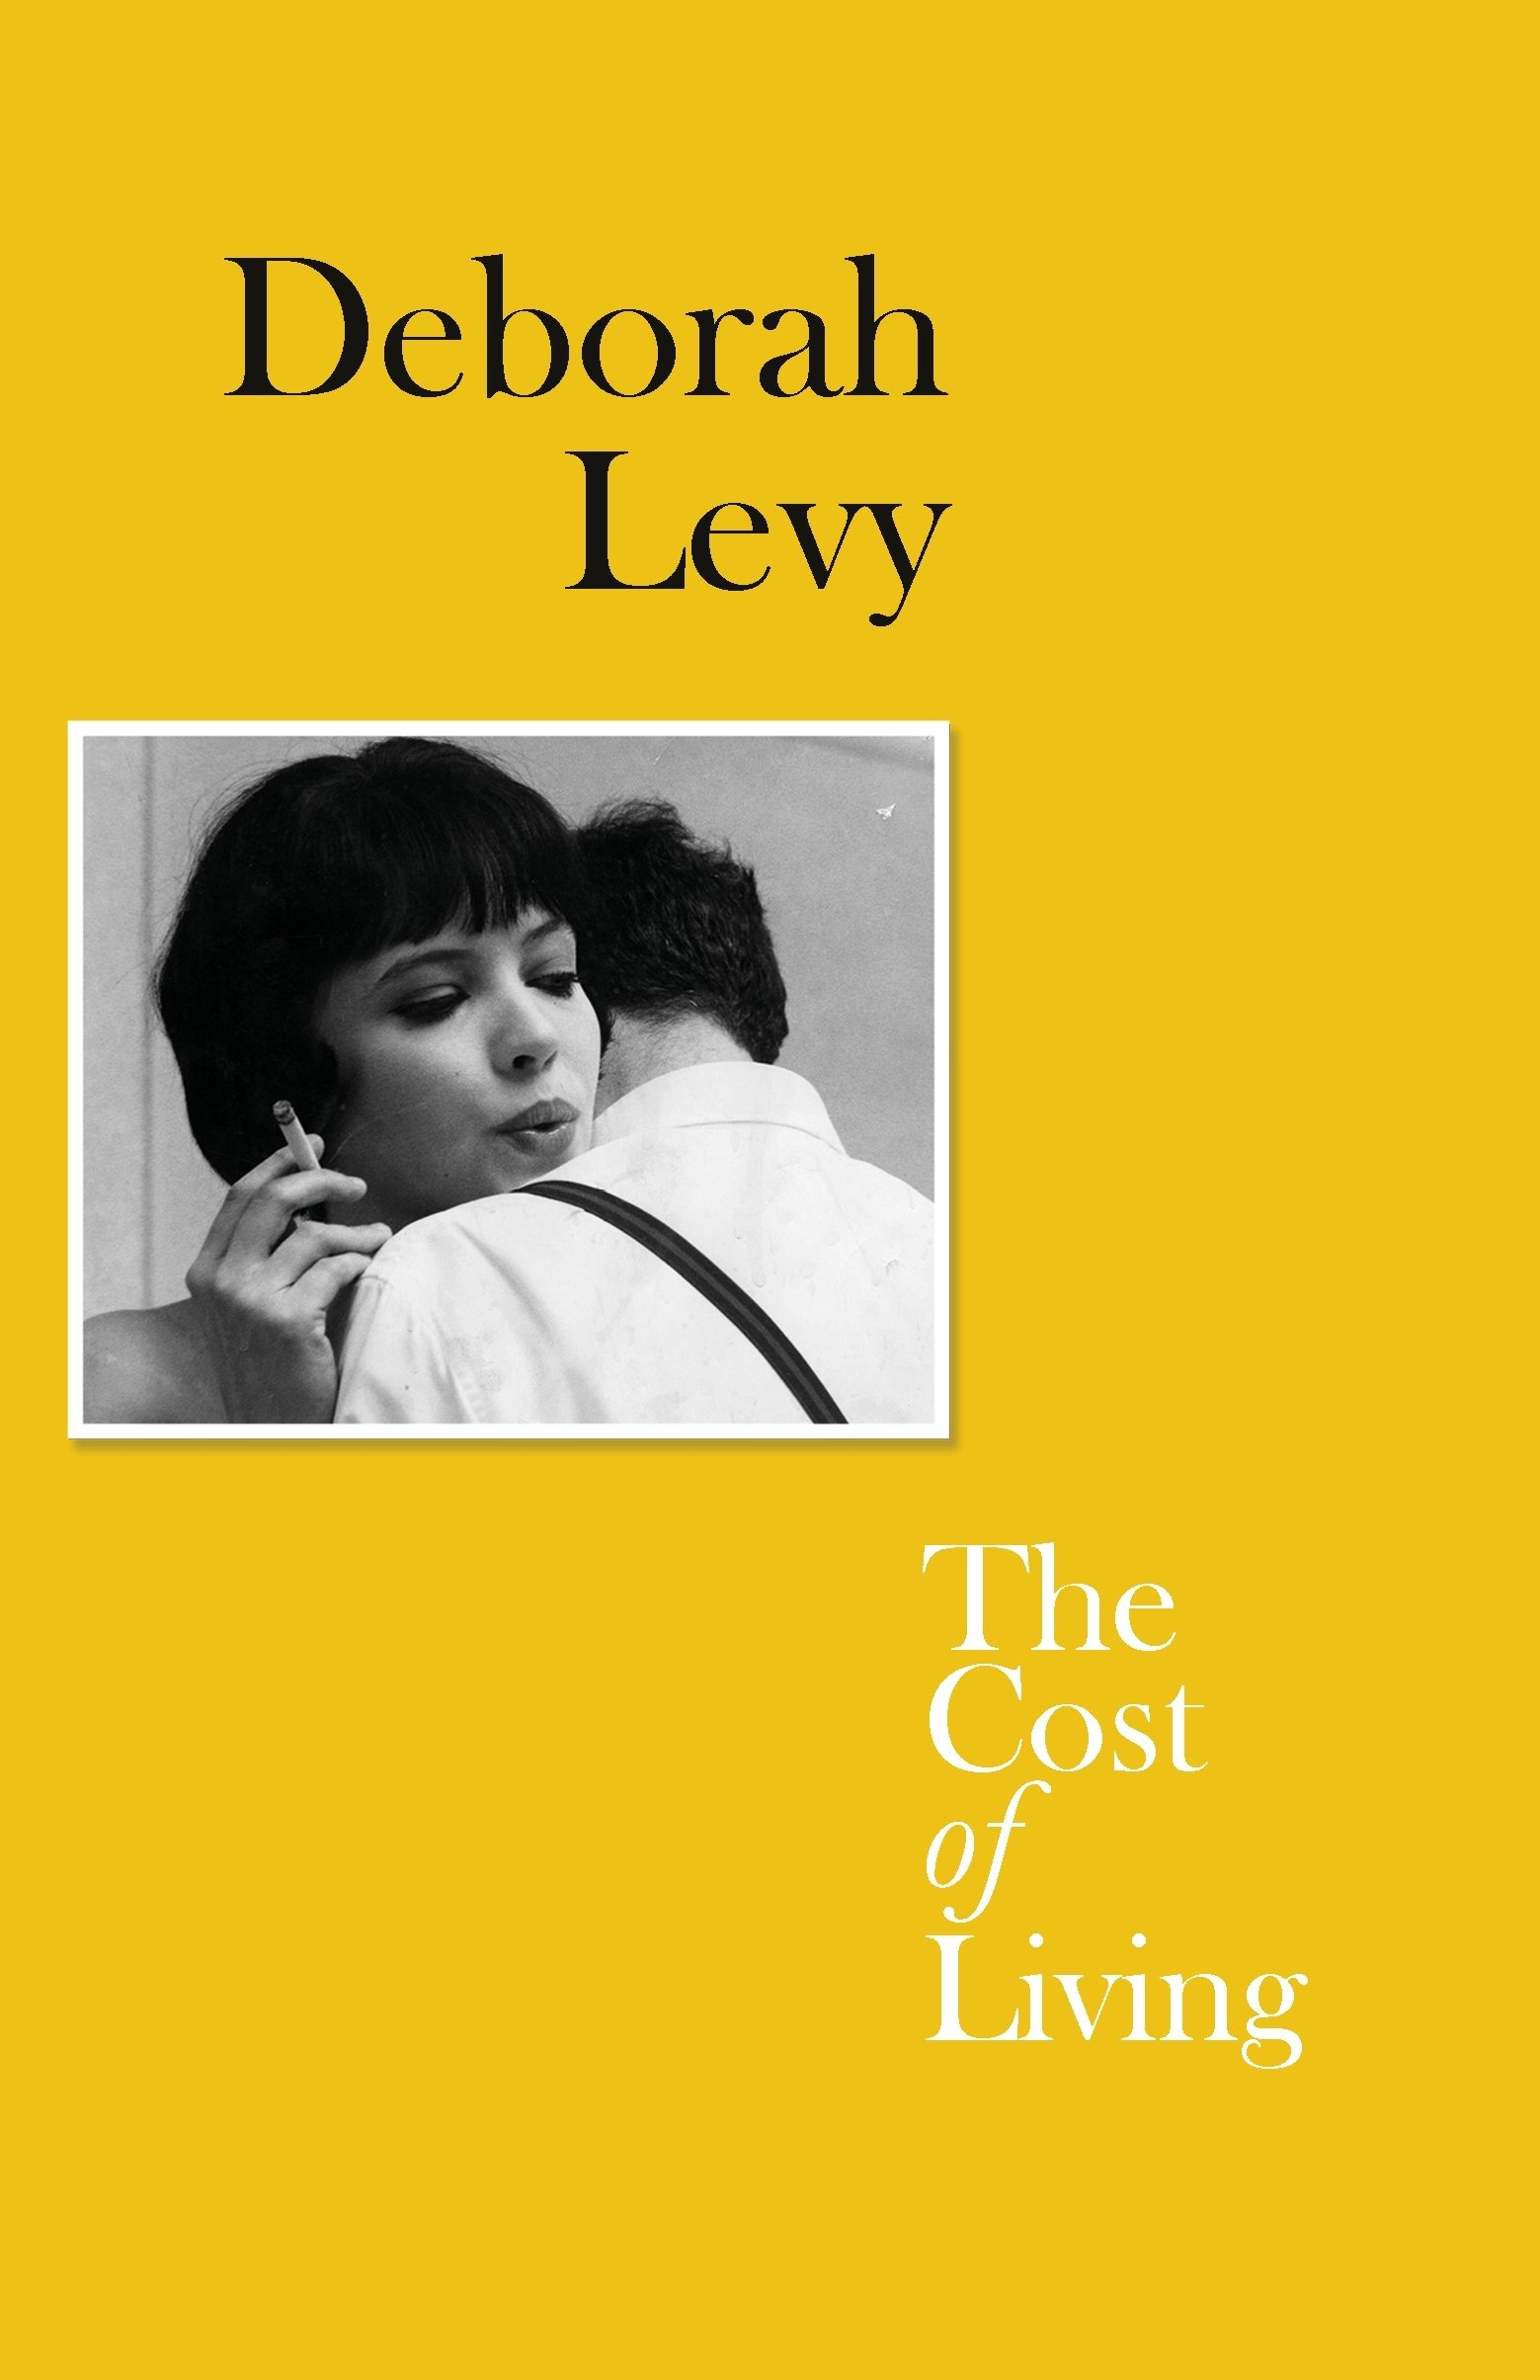 Image result for deborah levy the cost of living